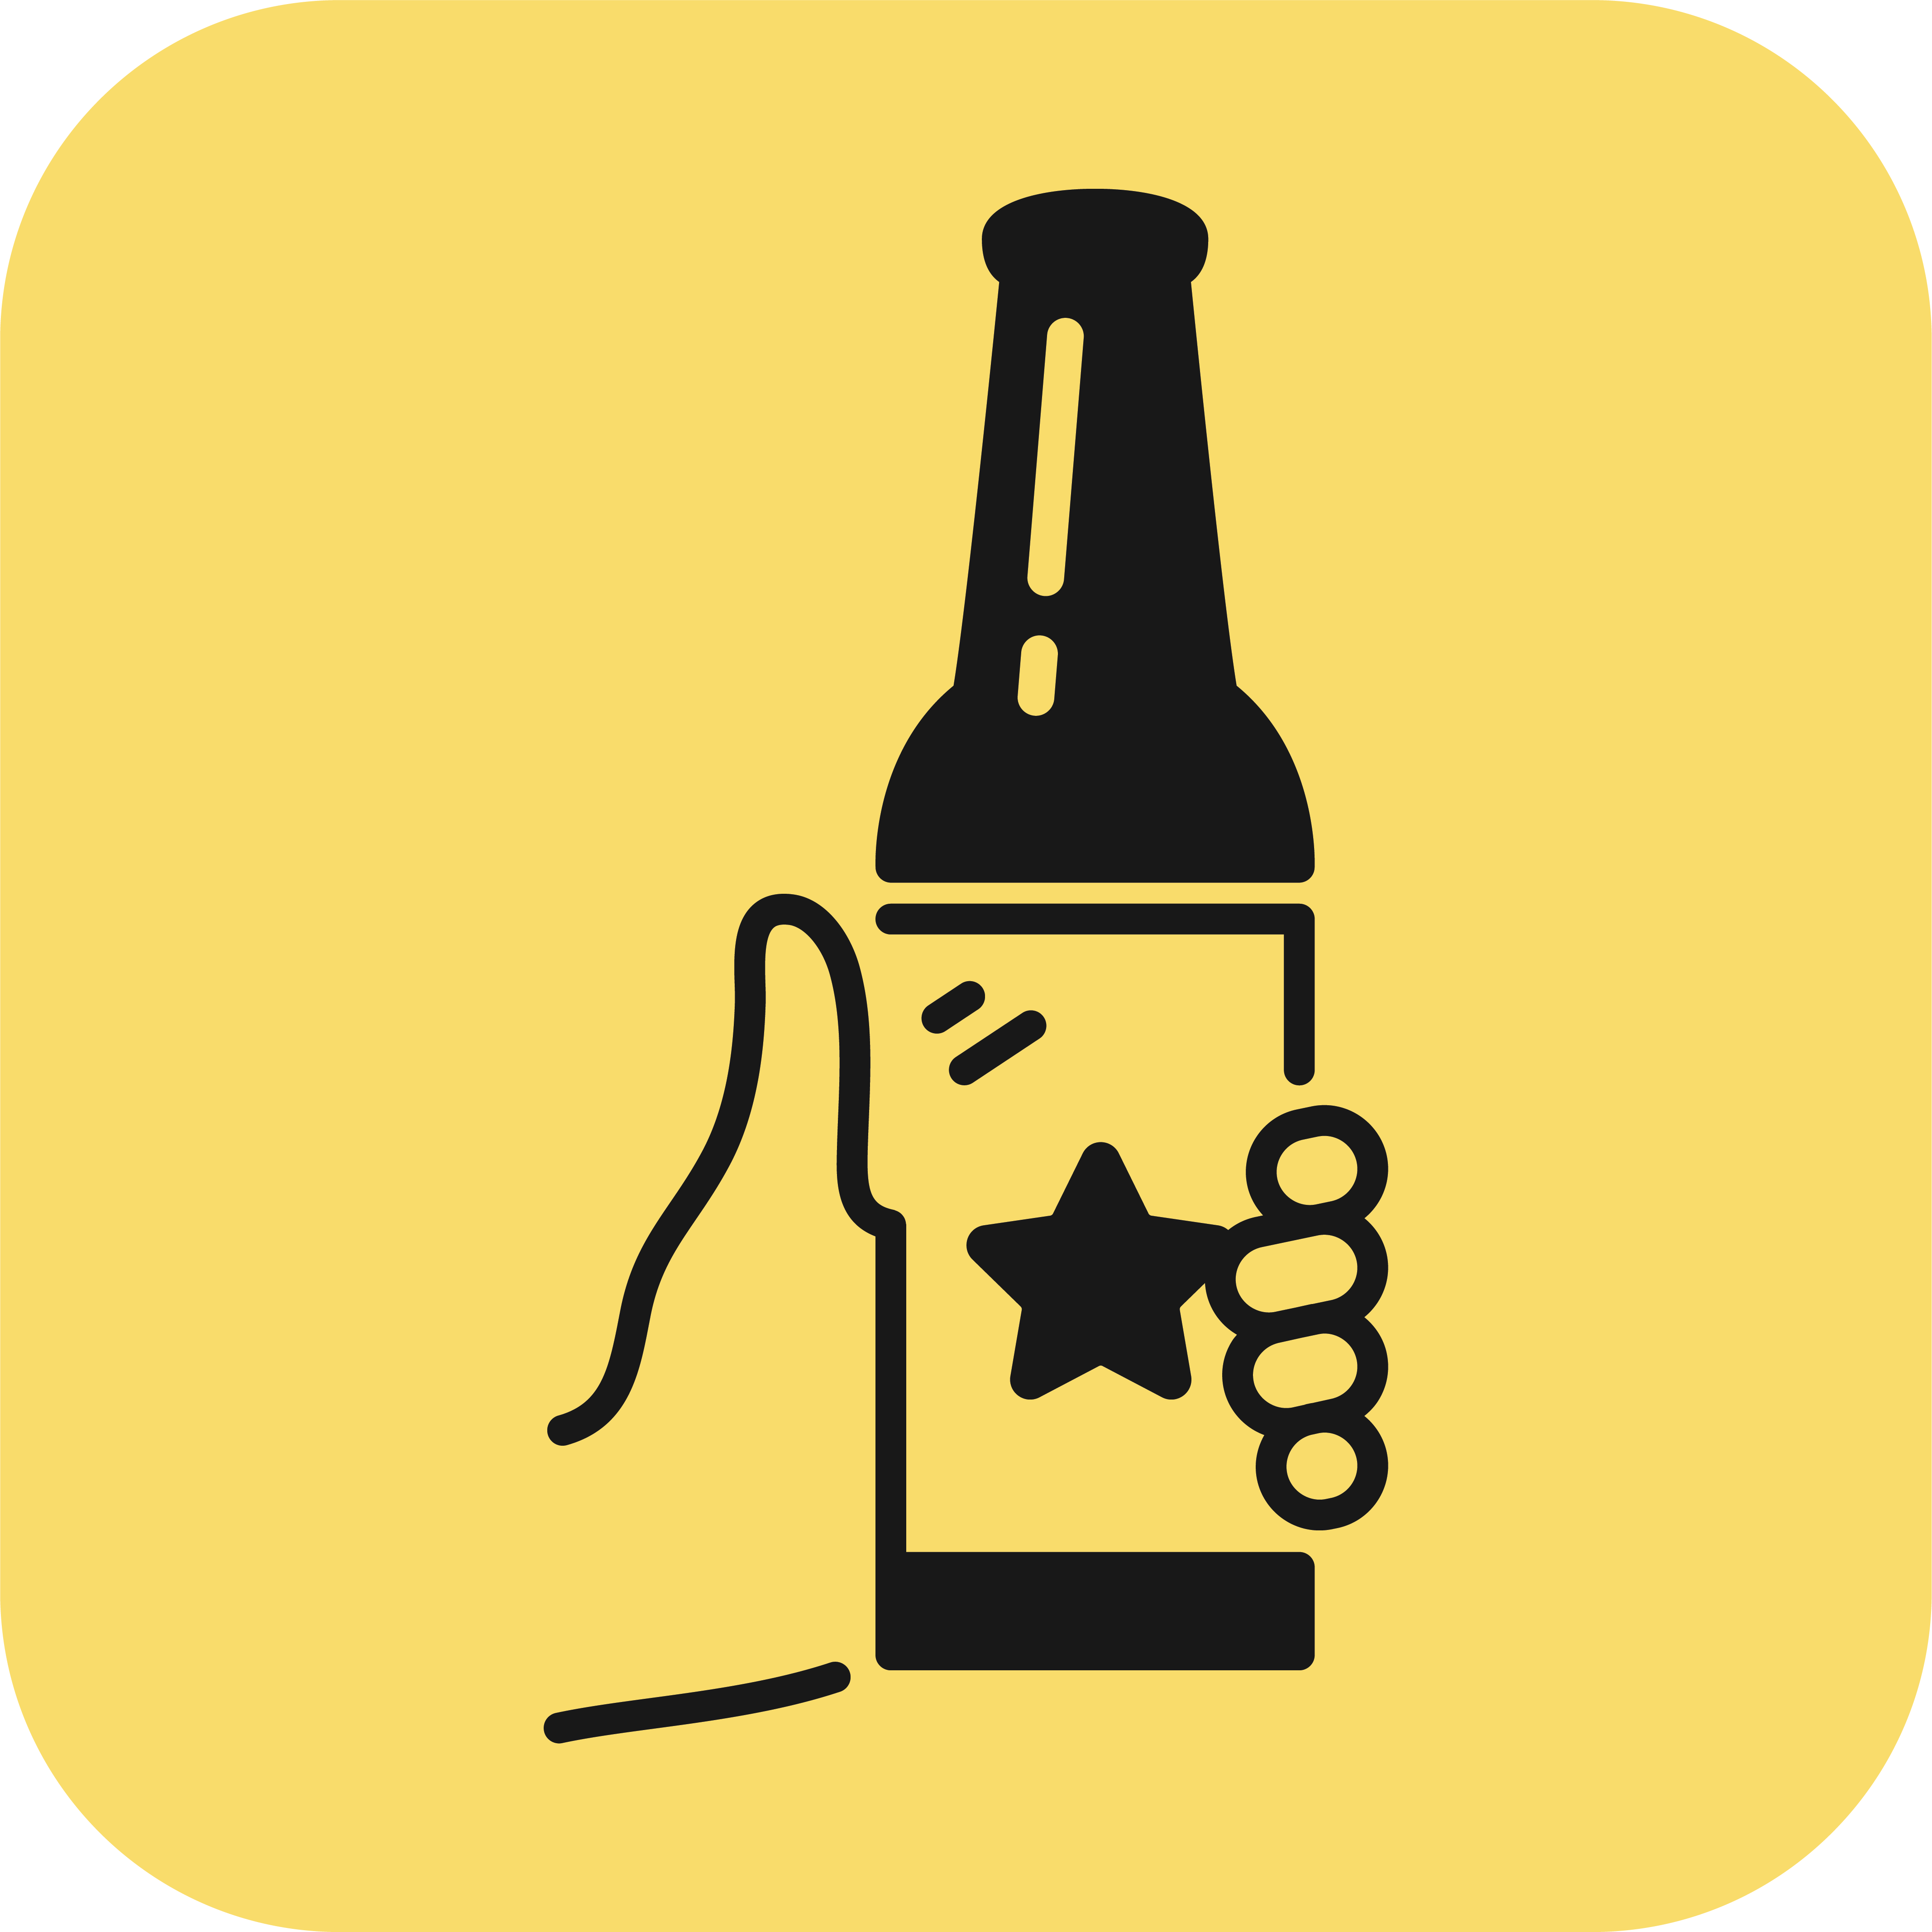 https://www.bier-ok.at/wp-content/uploads/2020/08/BeerTasting-BierOK.png